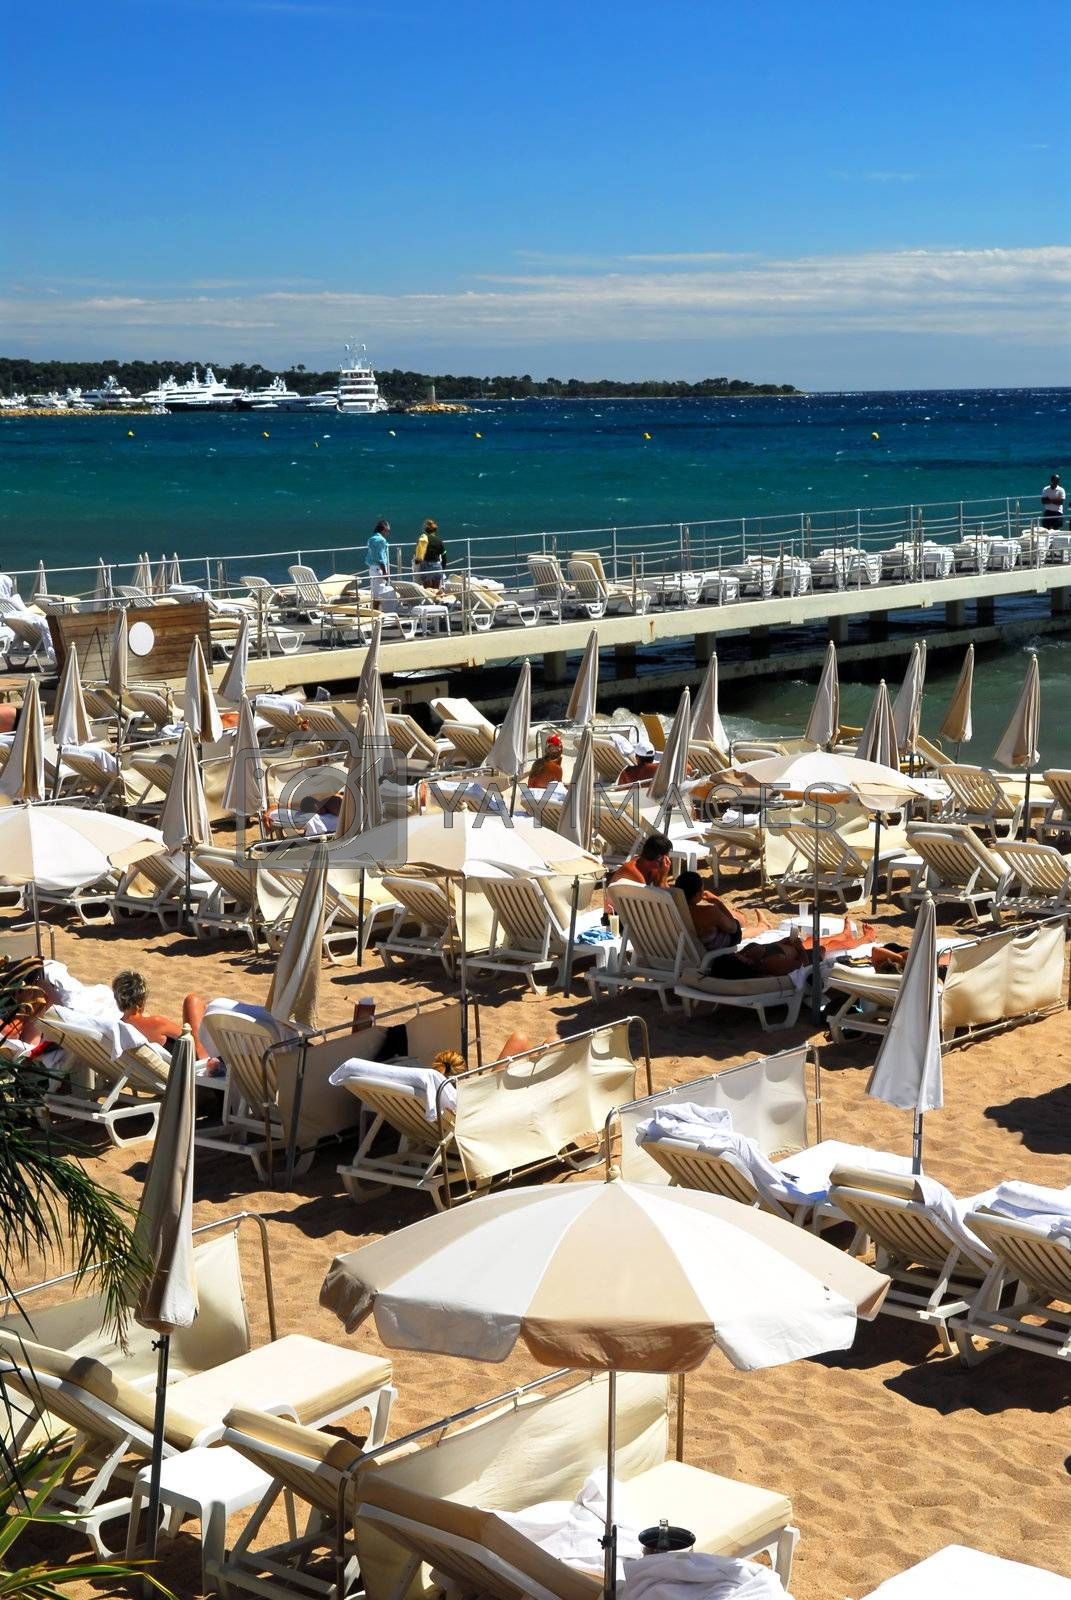 View on the beach from Croisette promenade in Cannes, France